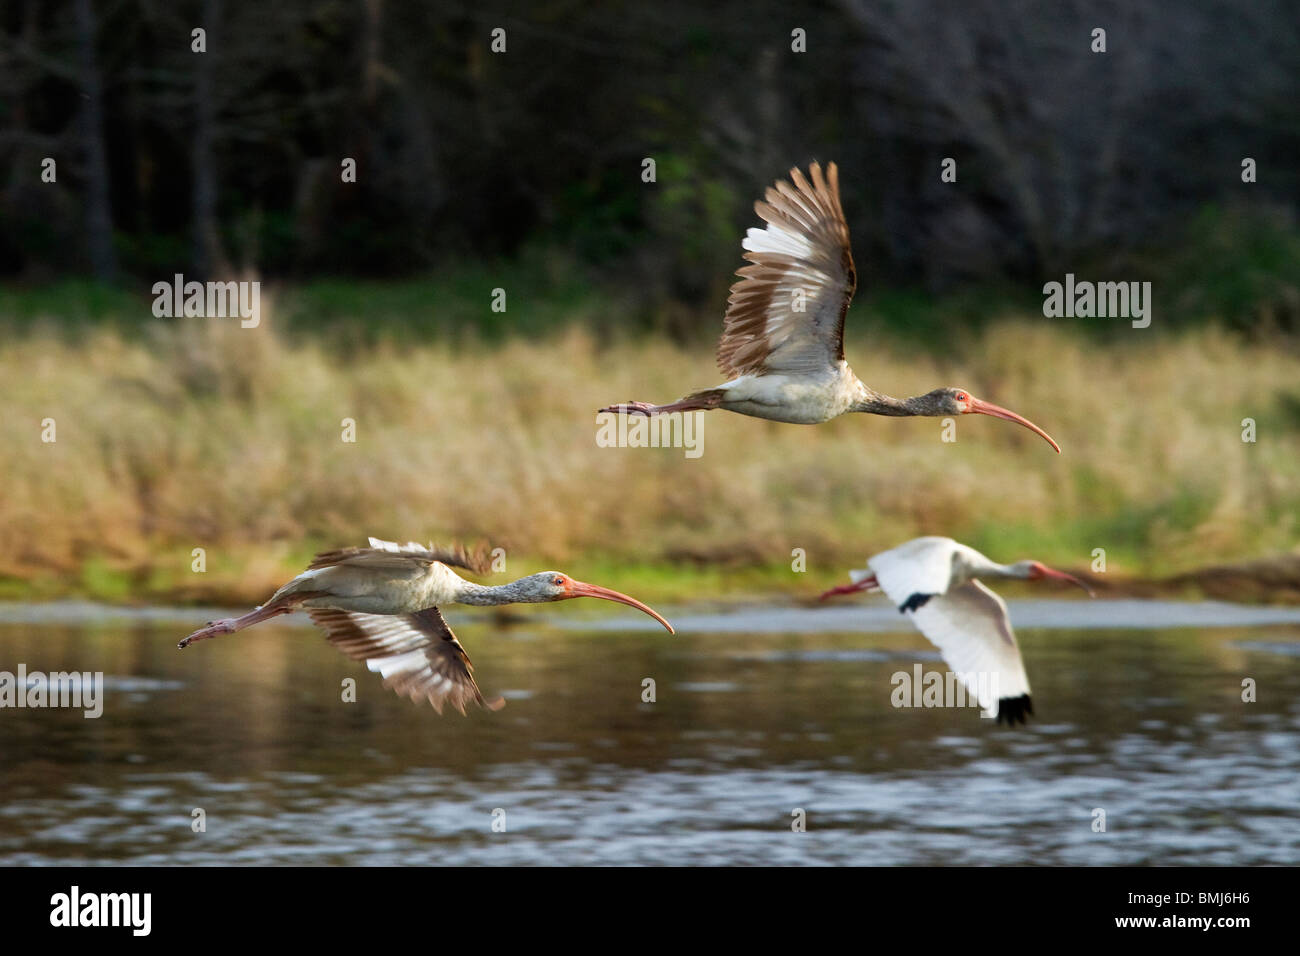 'White Ibis''Eudocimus albus''Birds in flight'Chincoteague National Wildlife Refuge. Maryland, - Stock Image